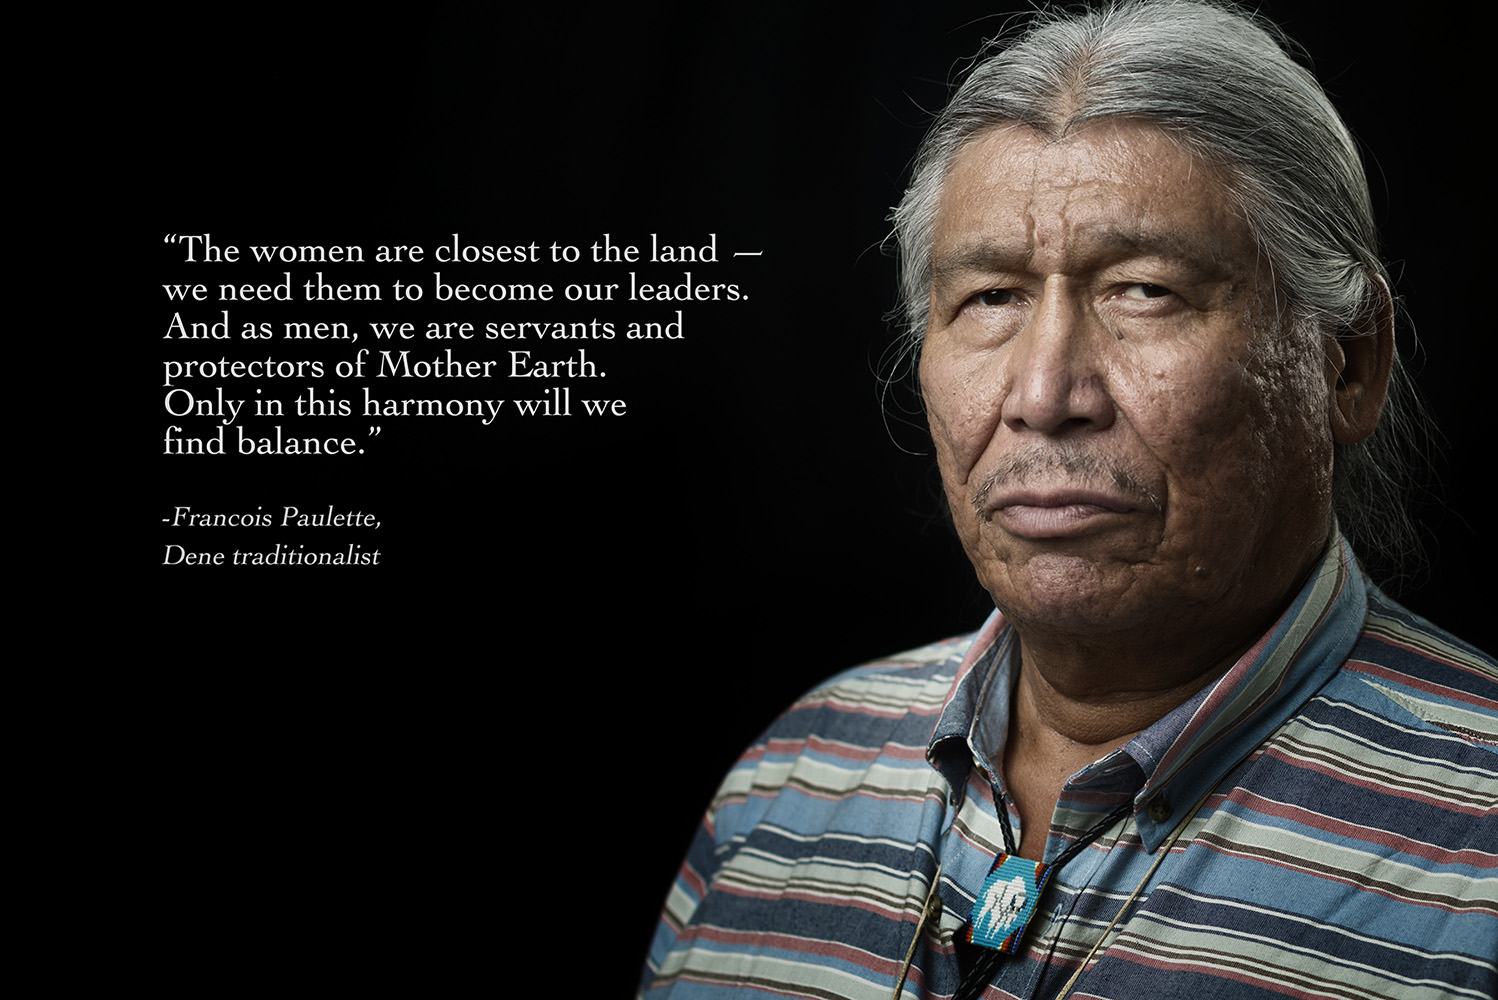 "Francois Paulette, Dene traditionalist""The women are closest to the land —we need them to become our leaders. And as men, we are servants and protectors of Mother Earth. Only in this harmony will we find balance."""